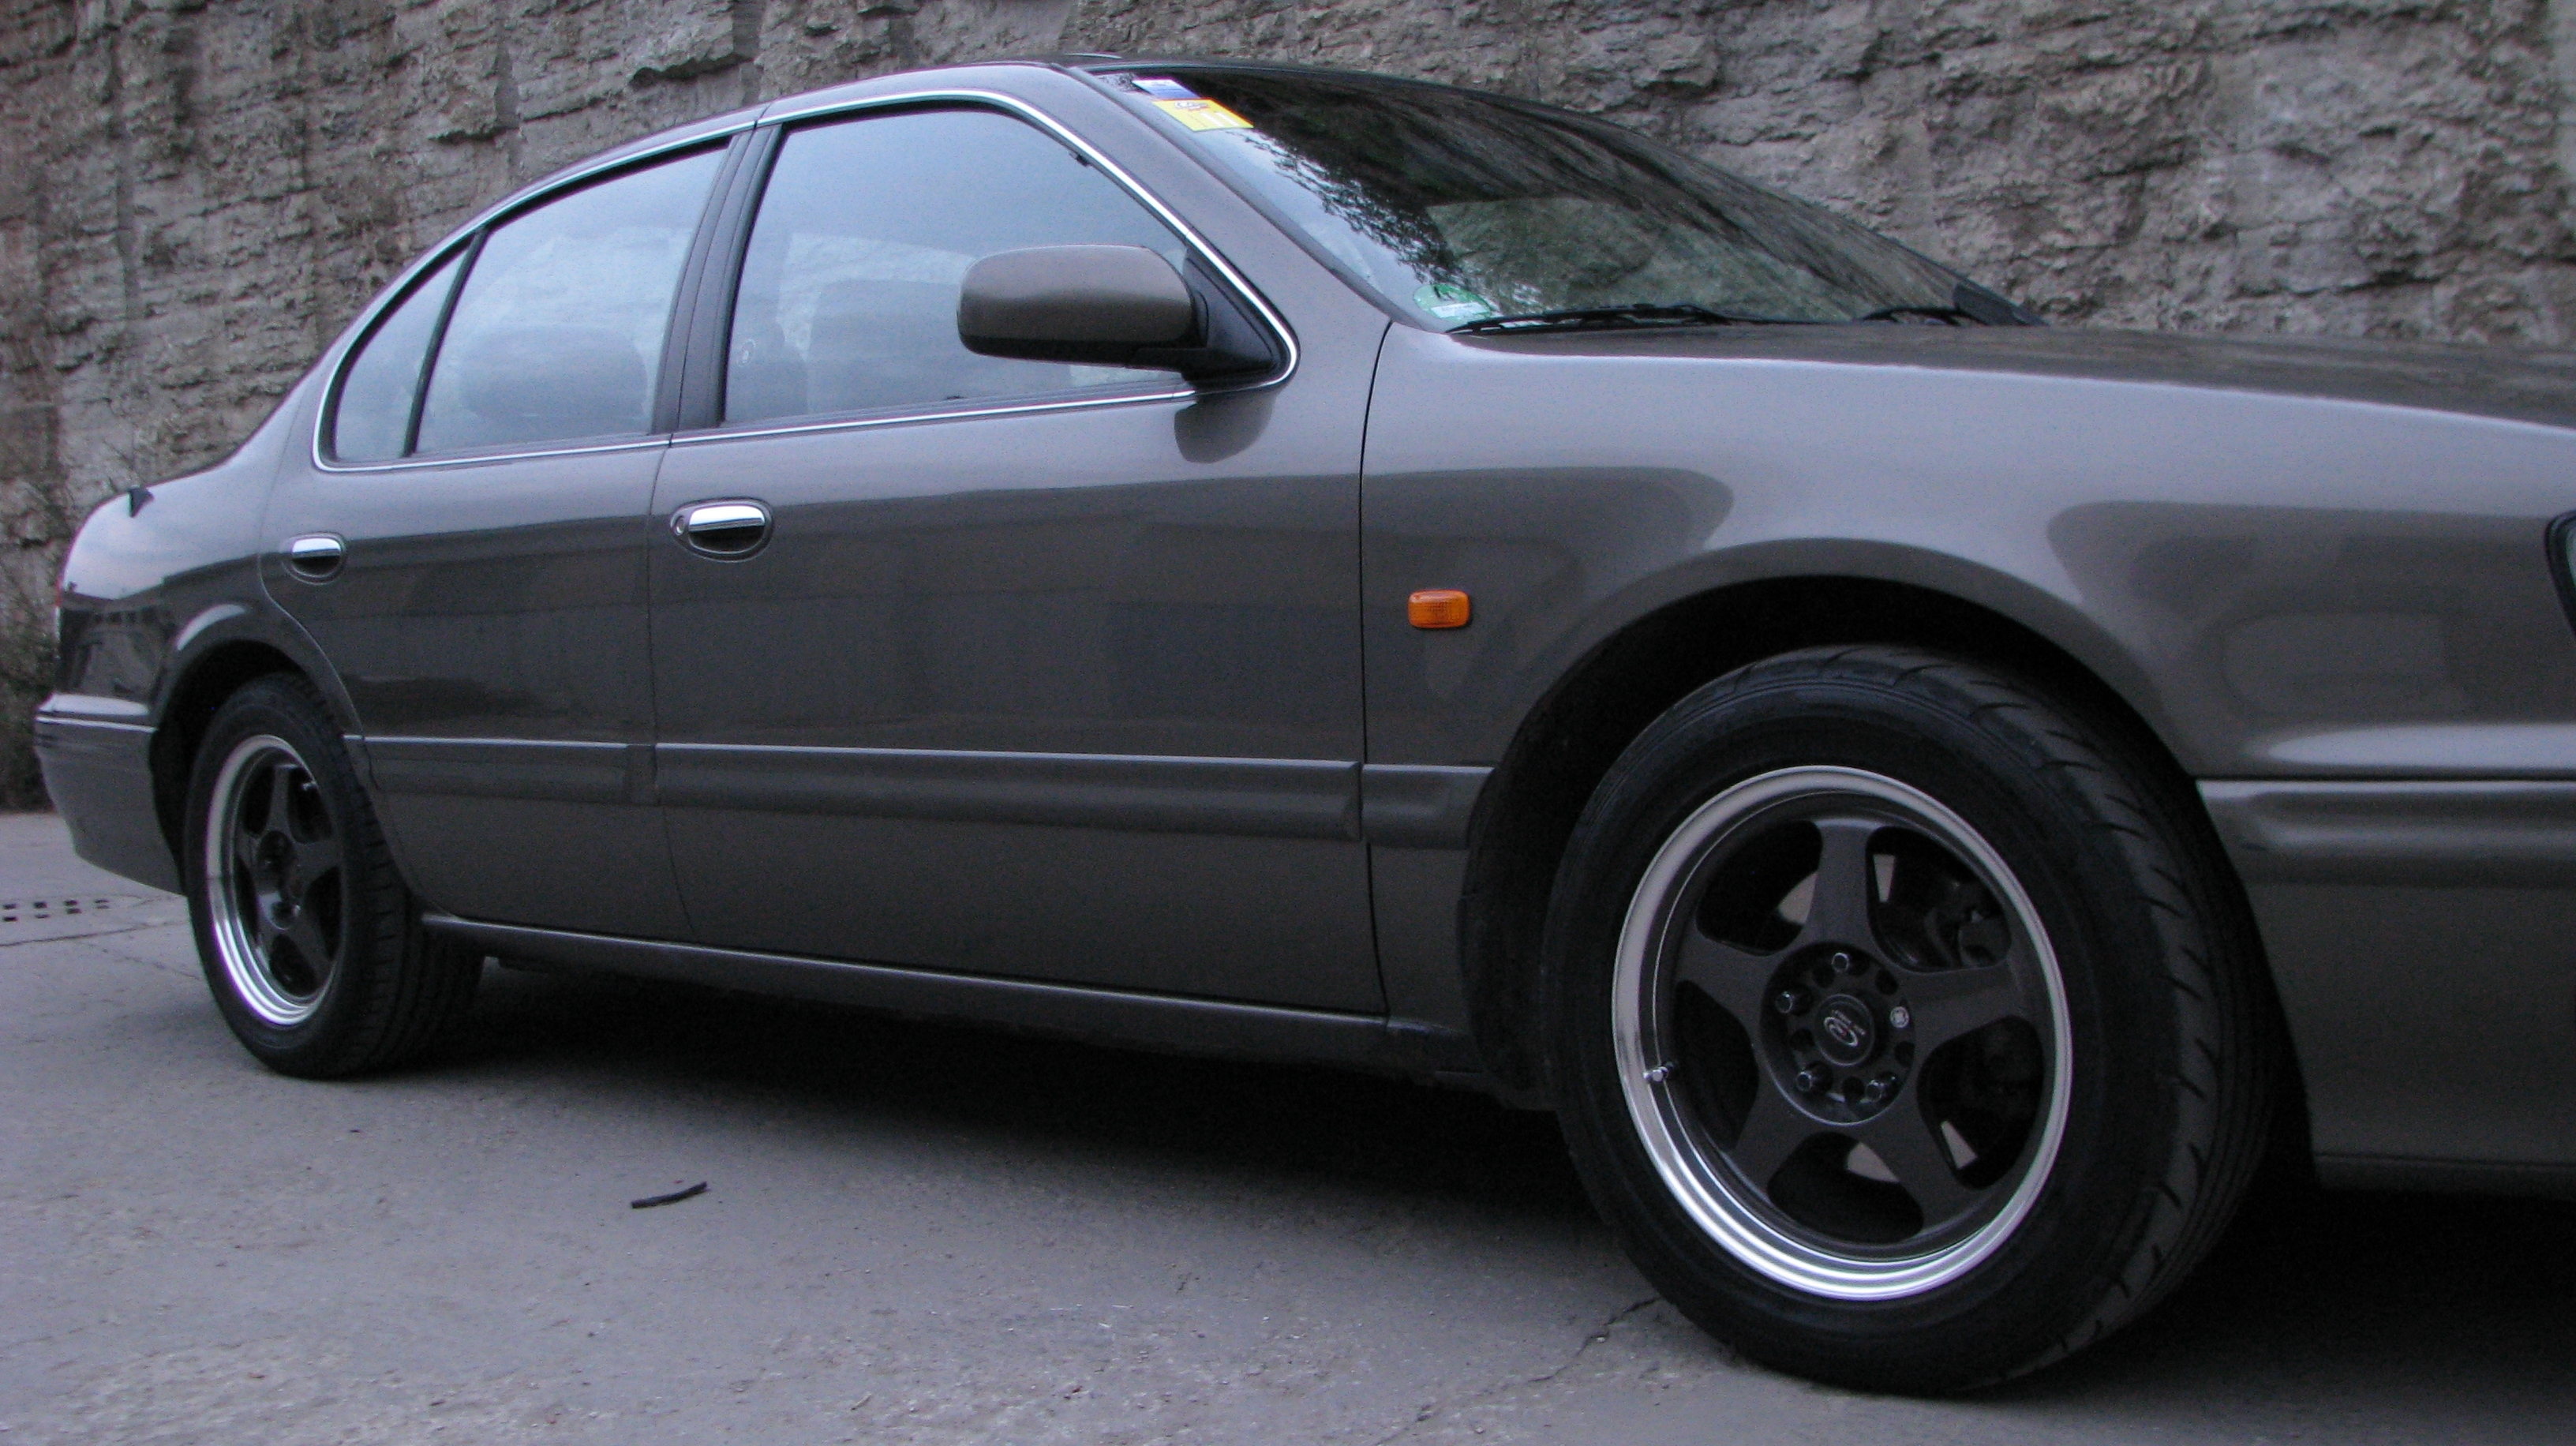 qx1 1998 nissan maxima specs, photos, modification info at cardomain